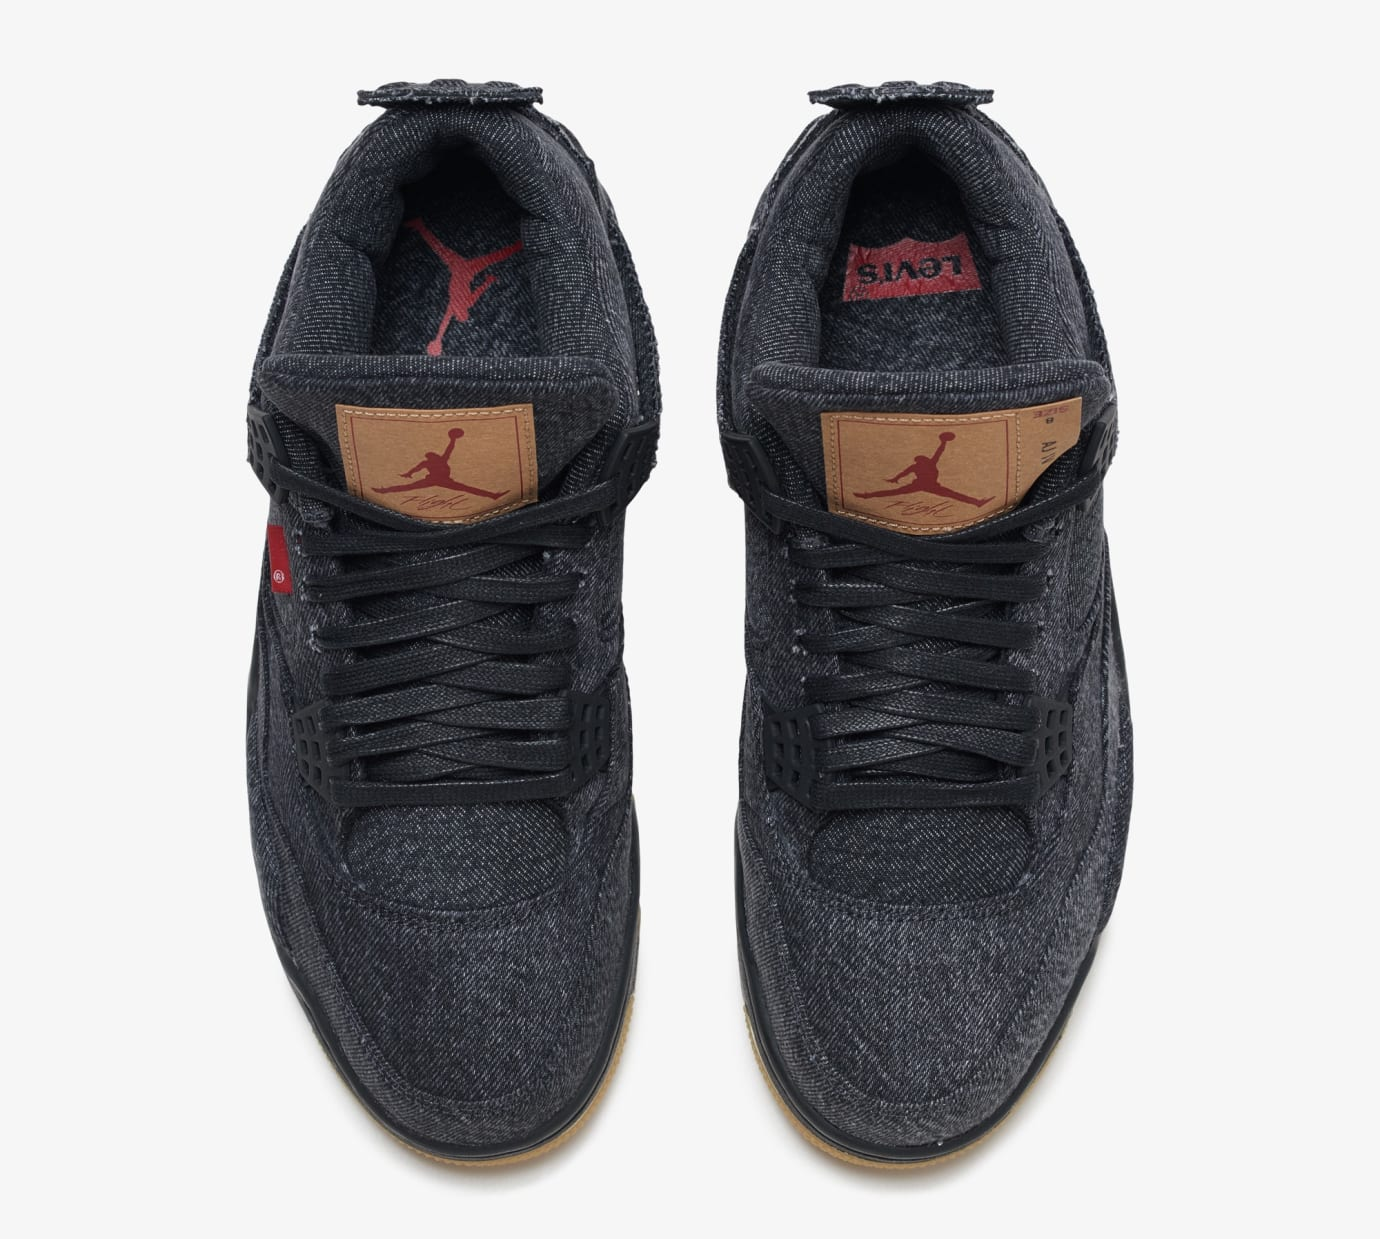 Levi's x Air Jordan 4 'Black' AO2571-001 (Top)